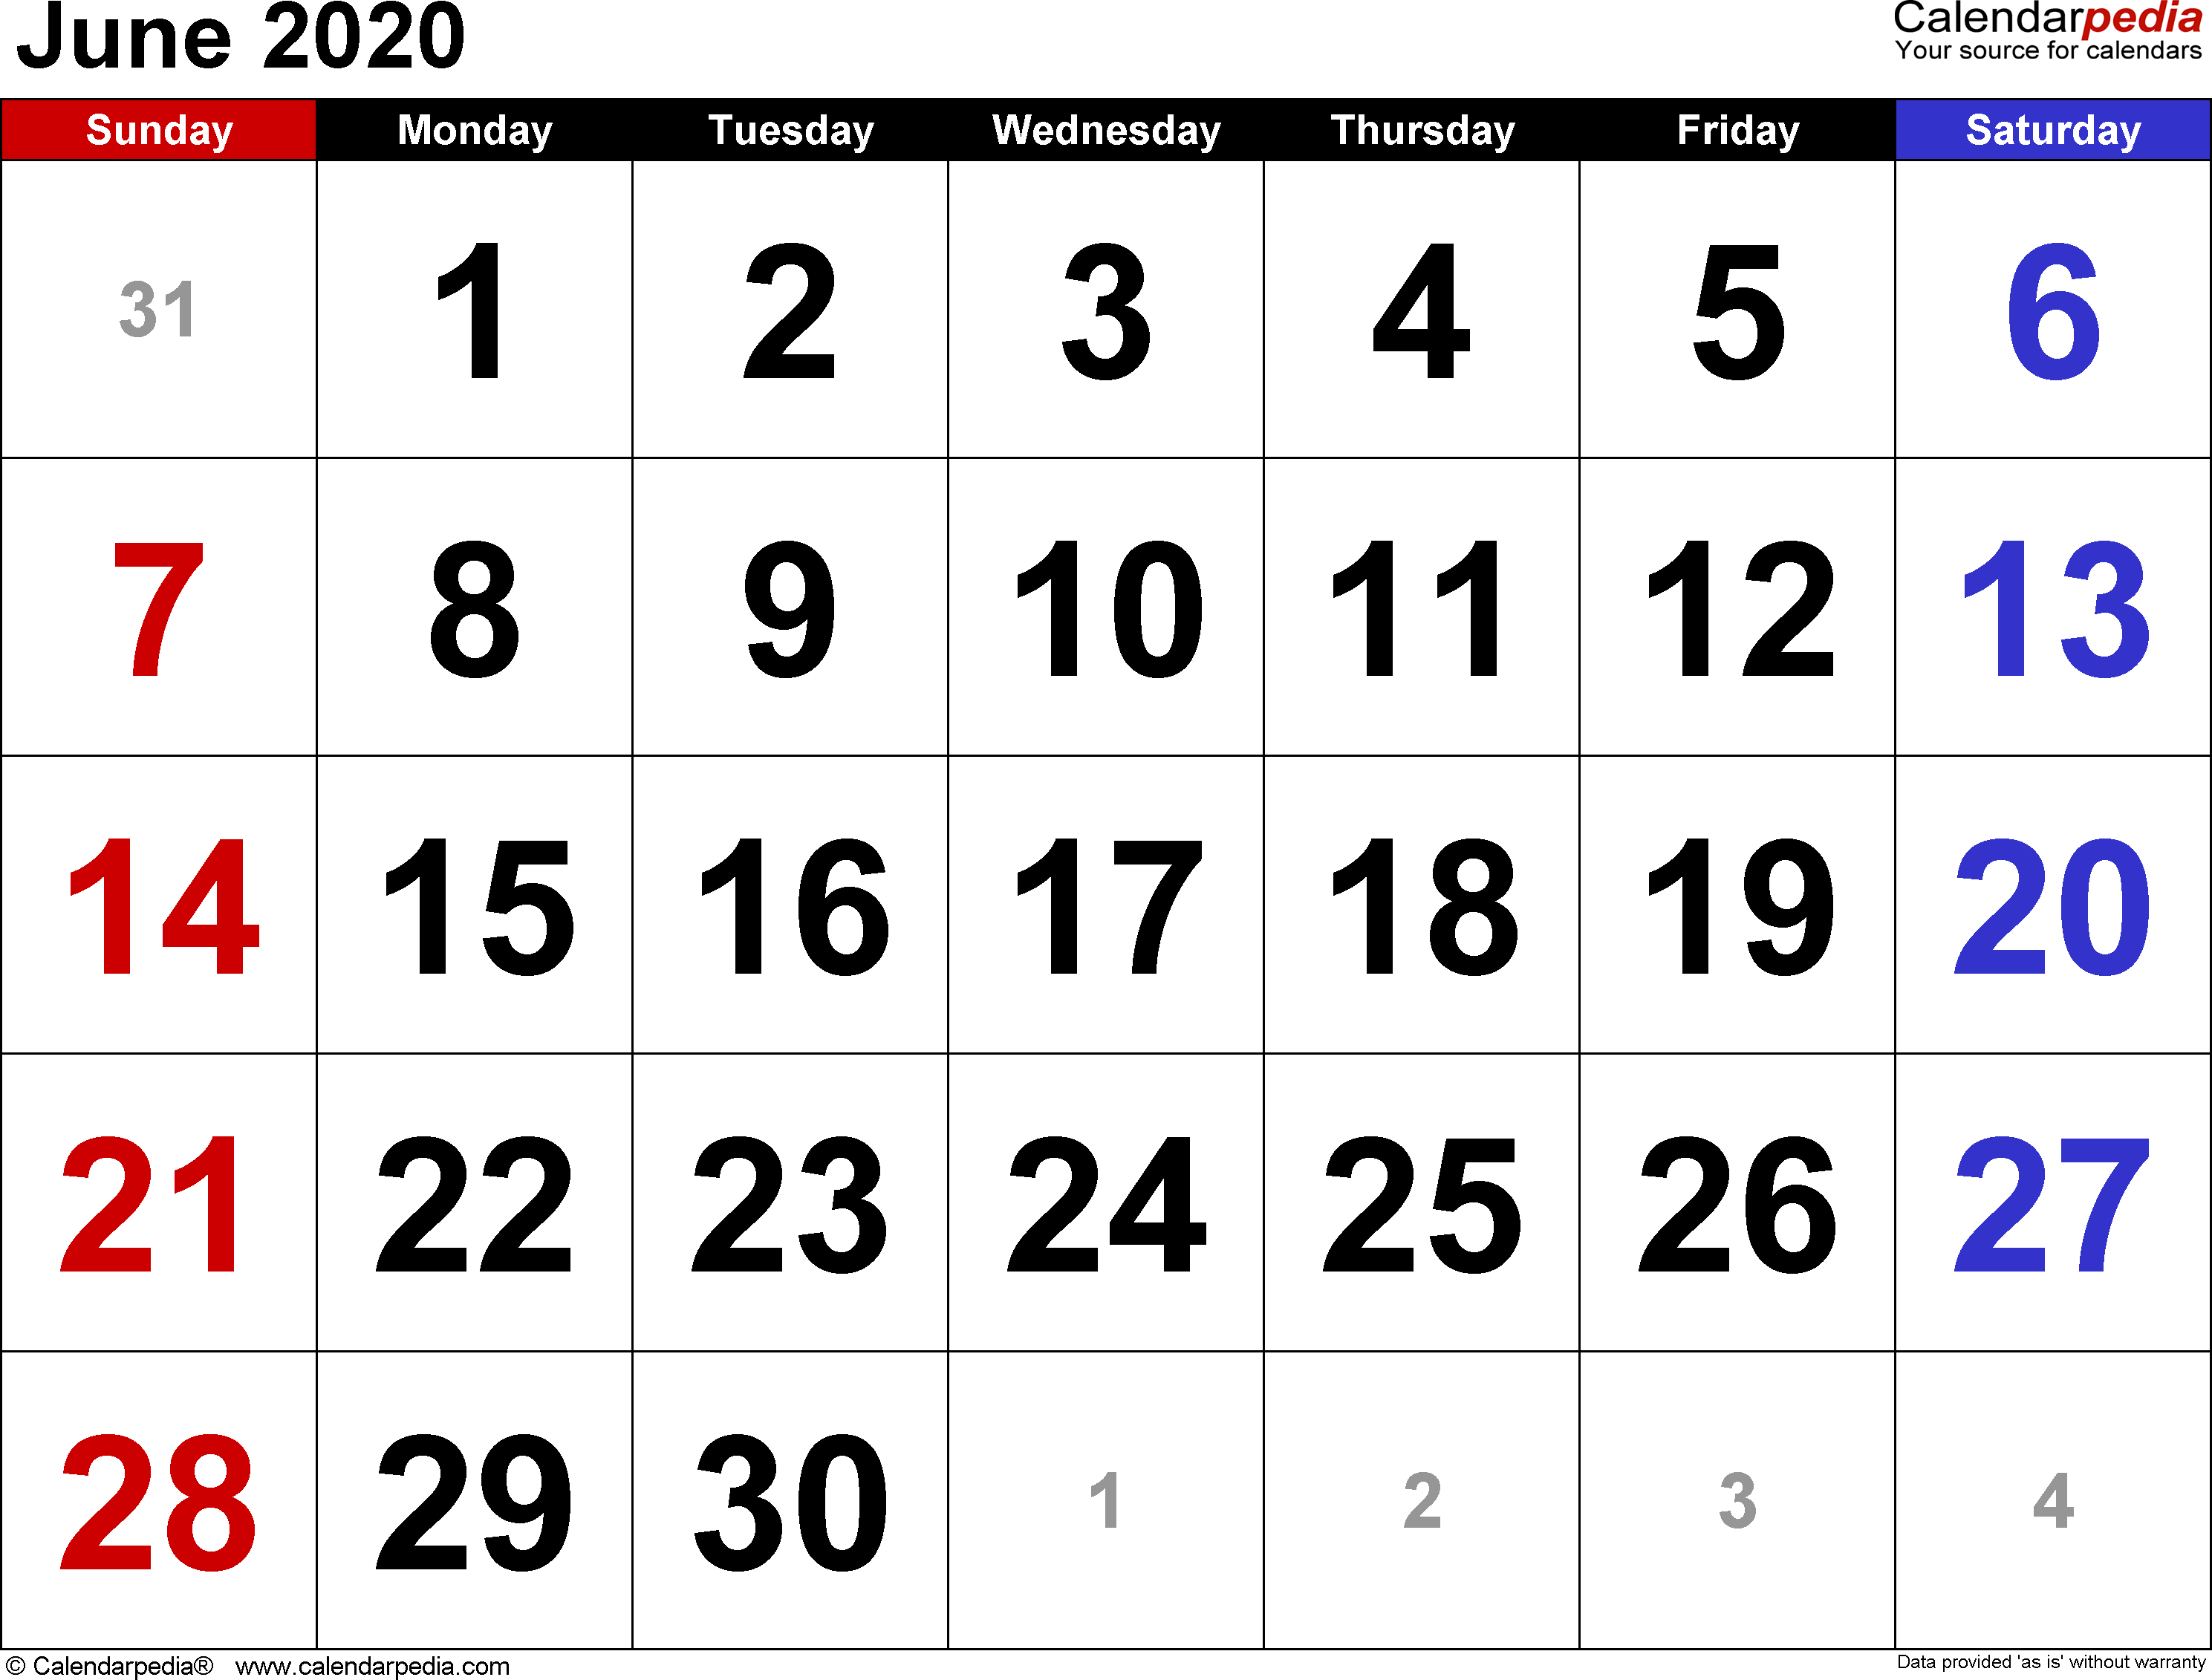 Calendar June 2020.June 2020 Calendars For Word Excel Pdf